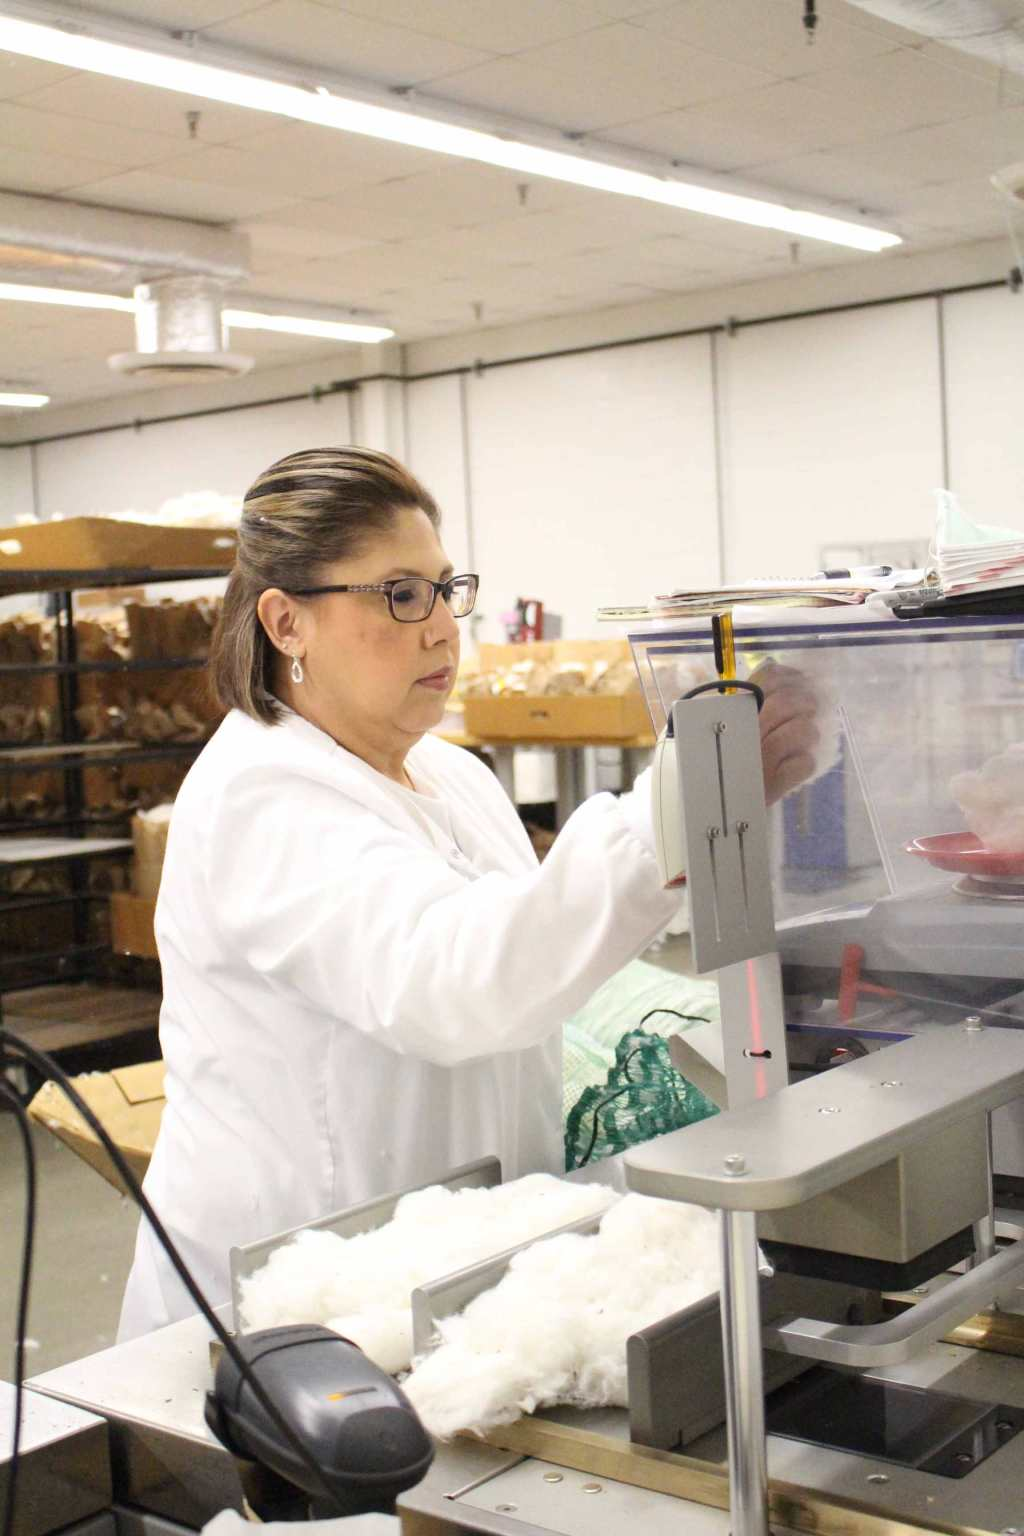 Biopolymer & Fiber research Institute employee weighing cotton and visually analyzing the sample.